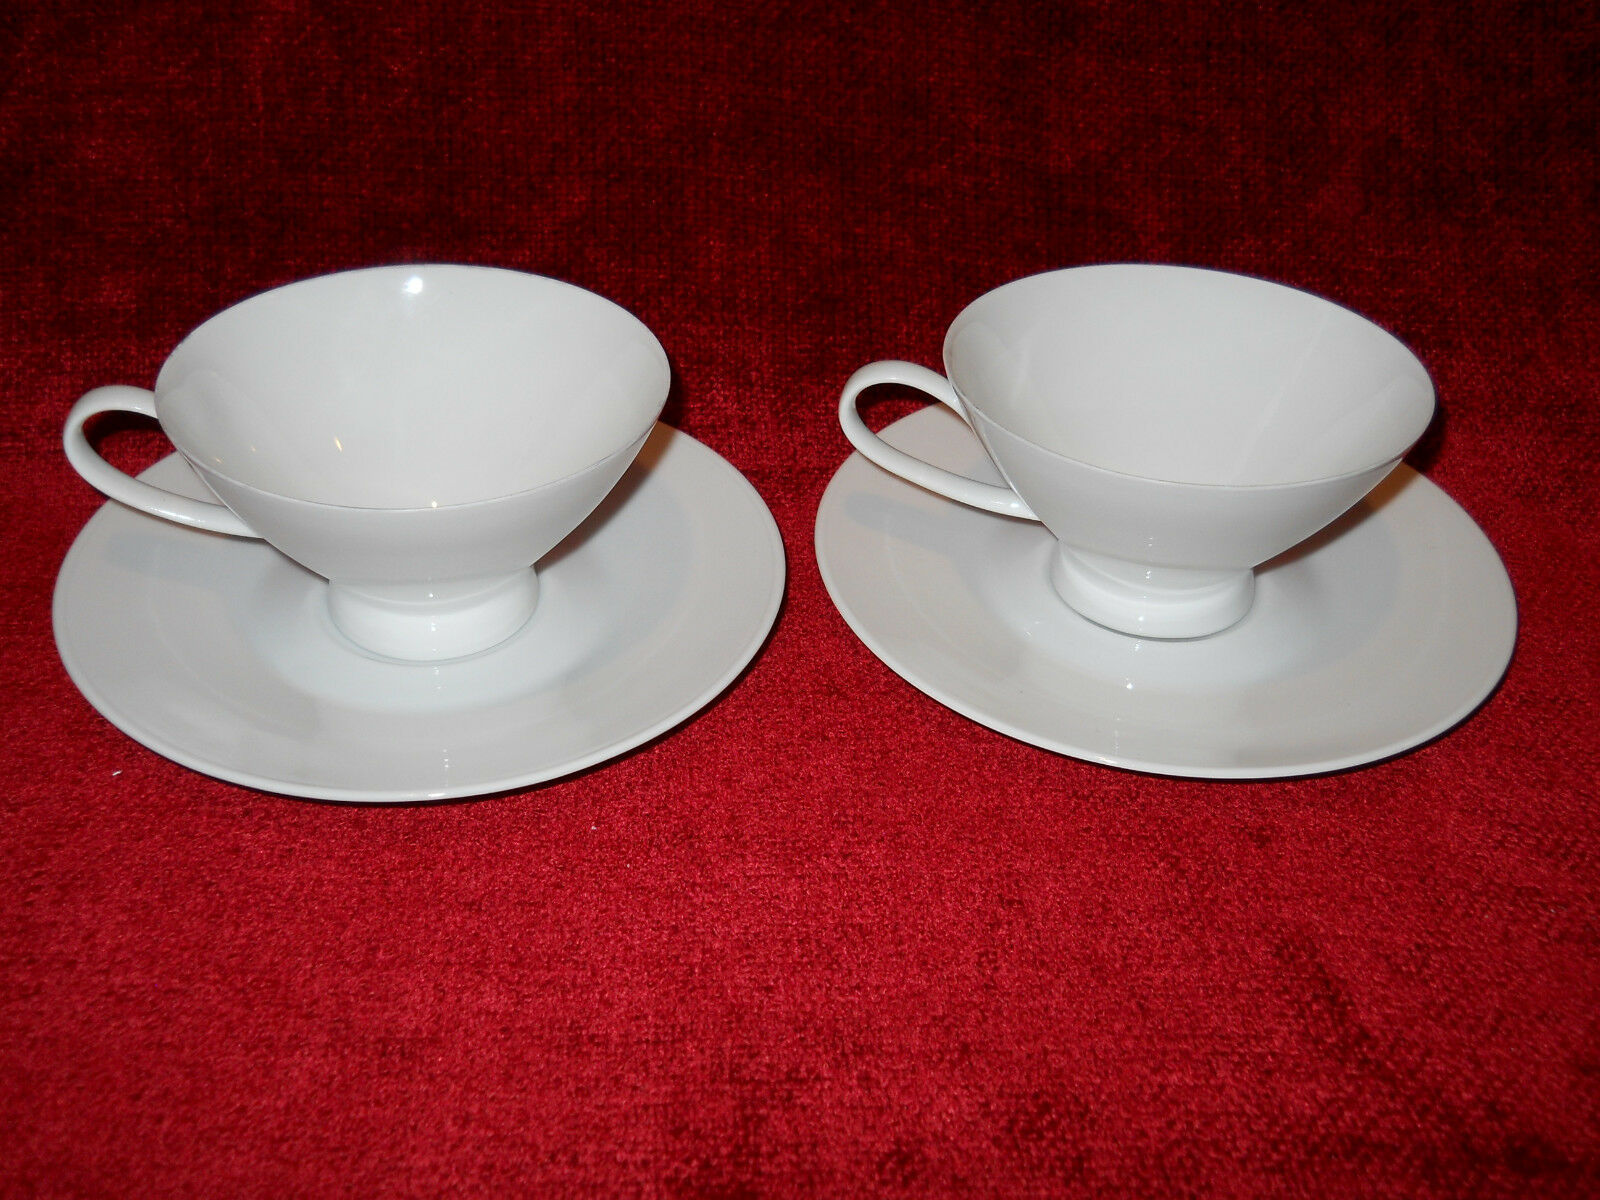 Primary image for Rosenthal Classic Modern white set of 2 cups and saucers